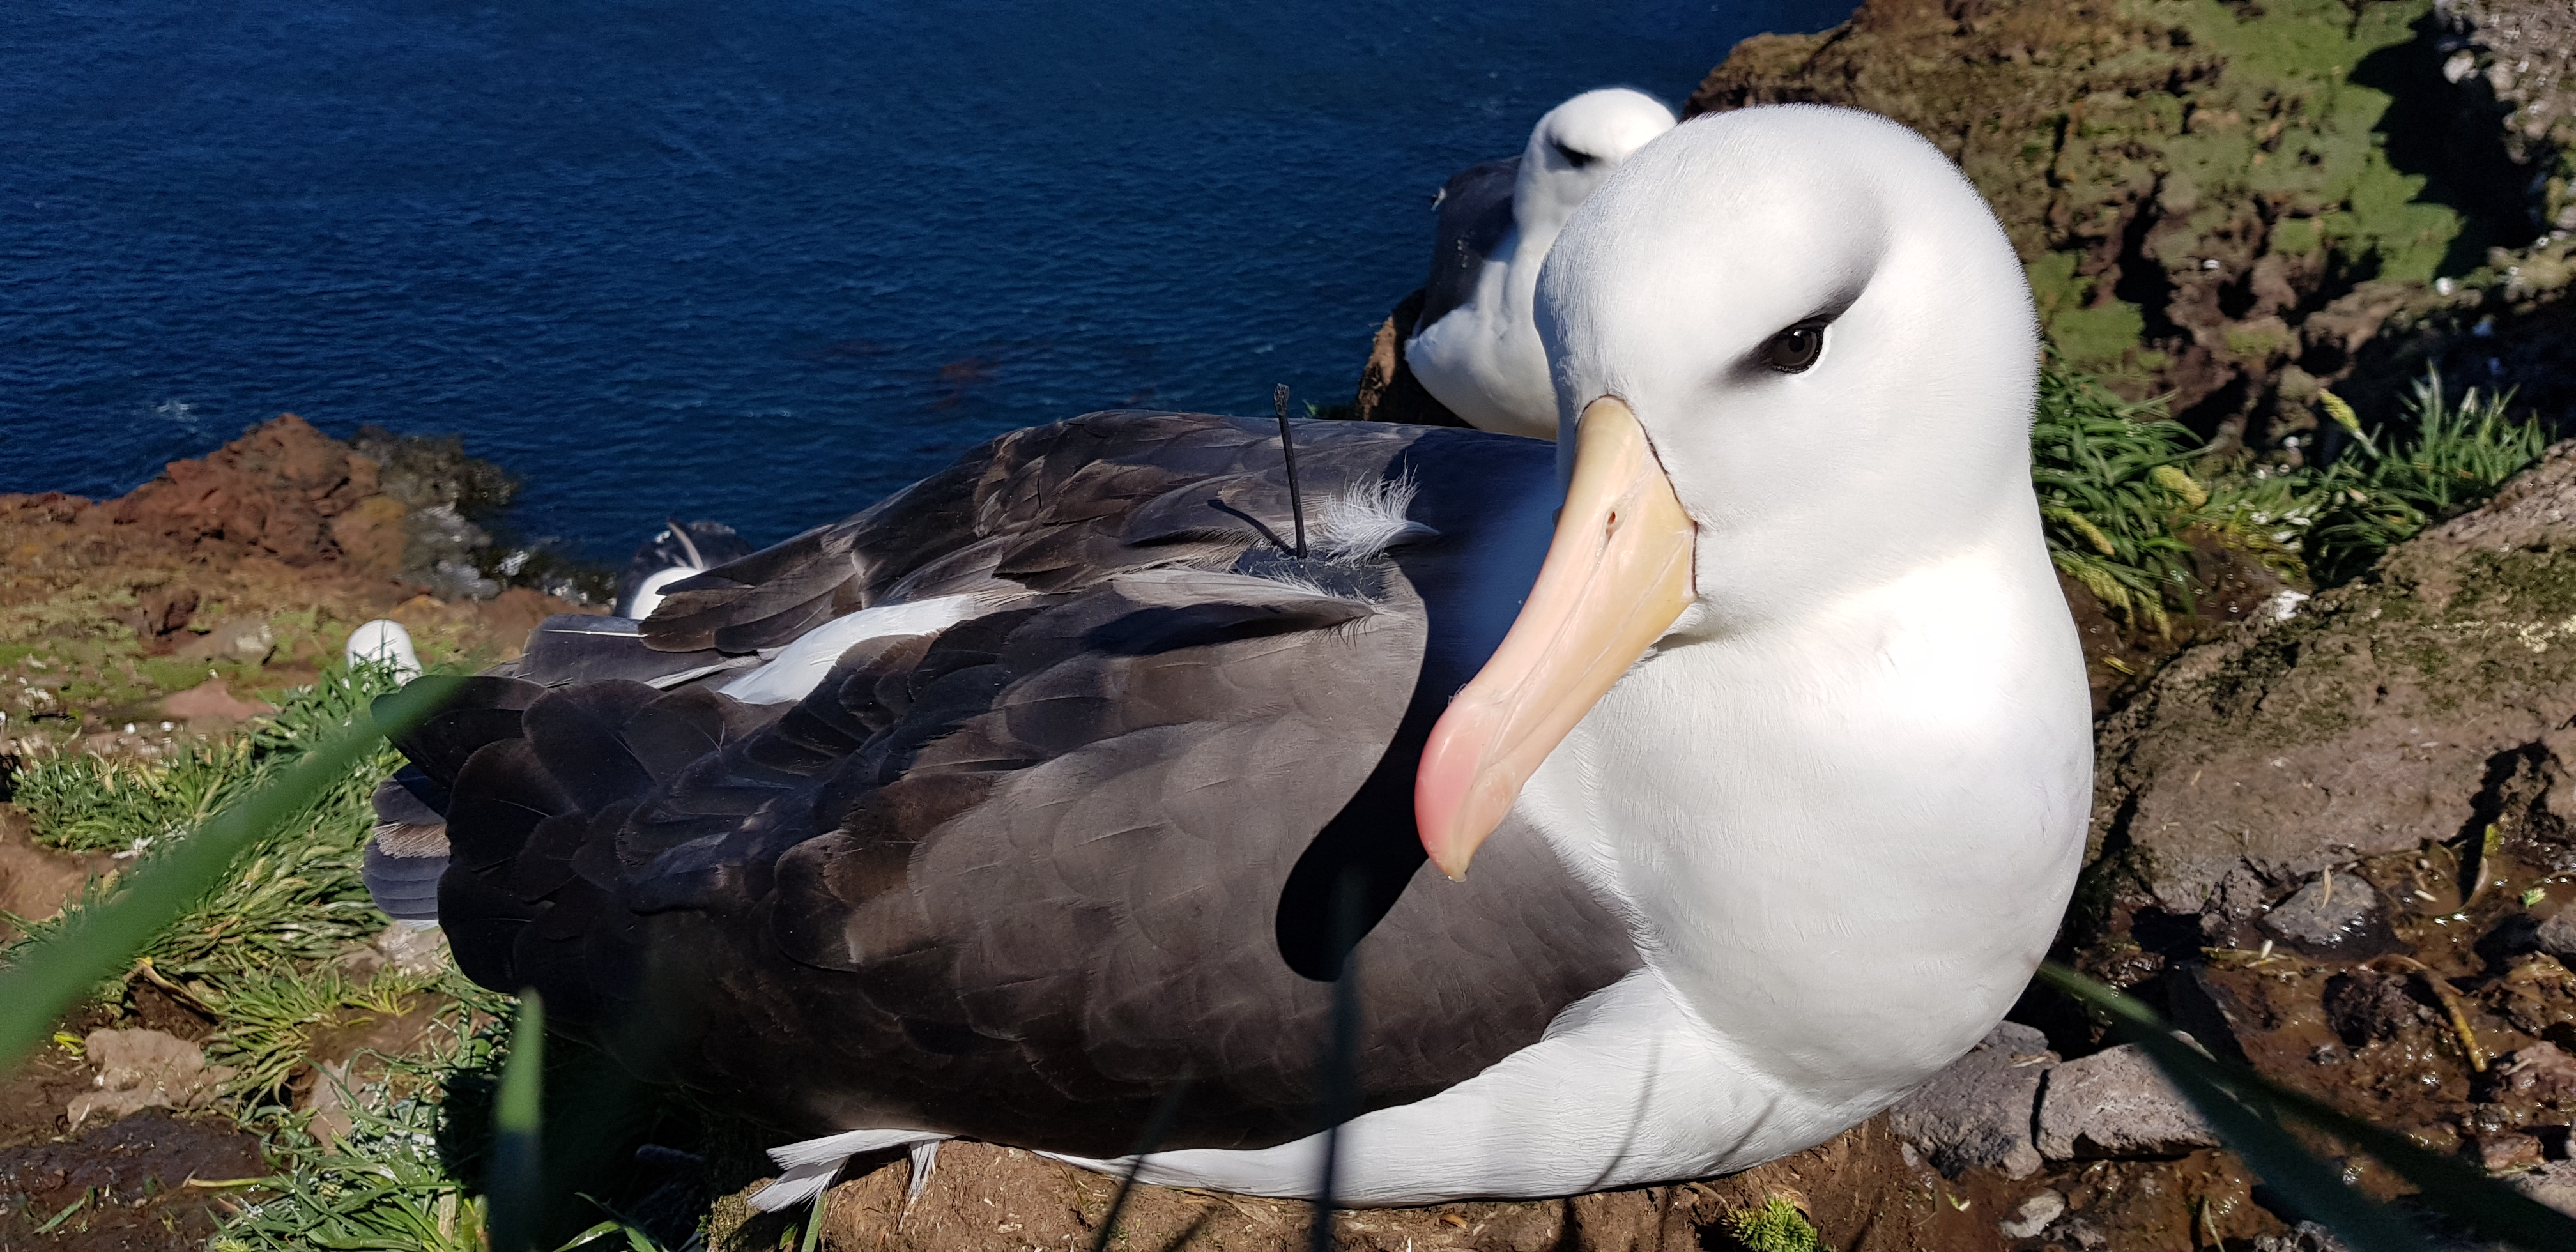 Dr Weimerskirch and his team had to make new loggers to accommodate the smaller size of black-browed albatrosses. Image credit - Henri Weimerskirch/CNRS